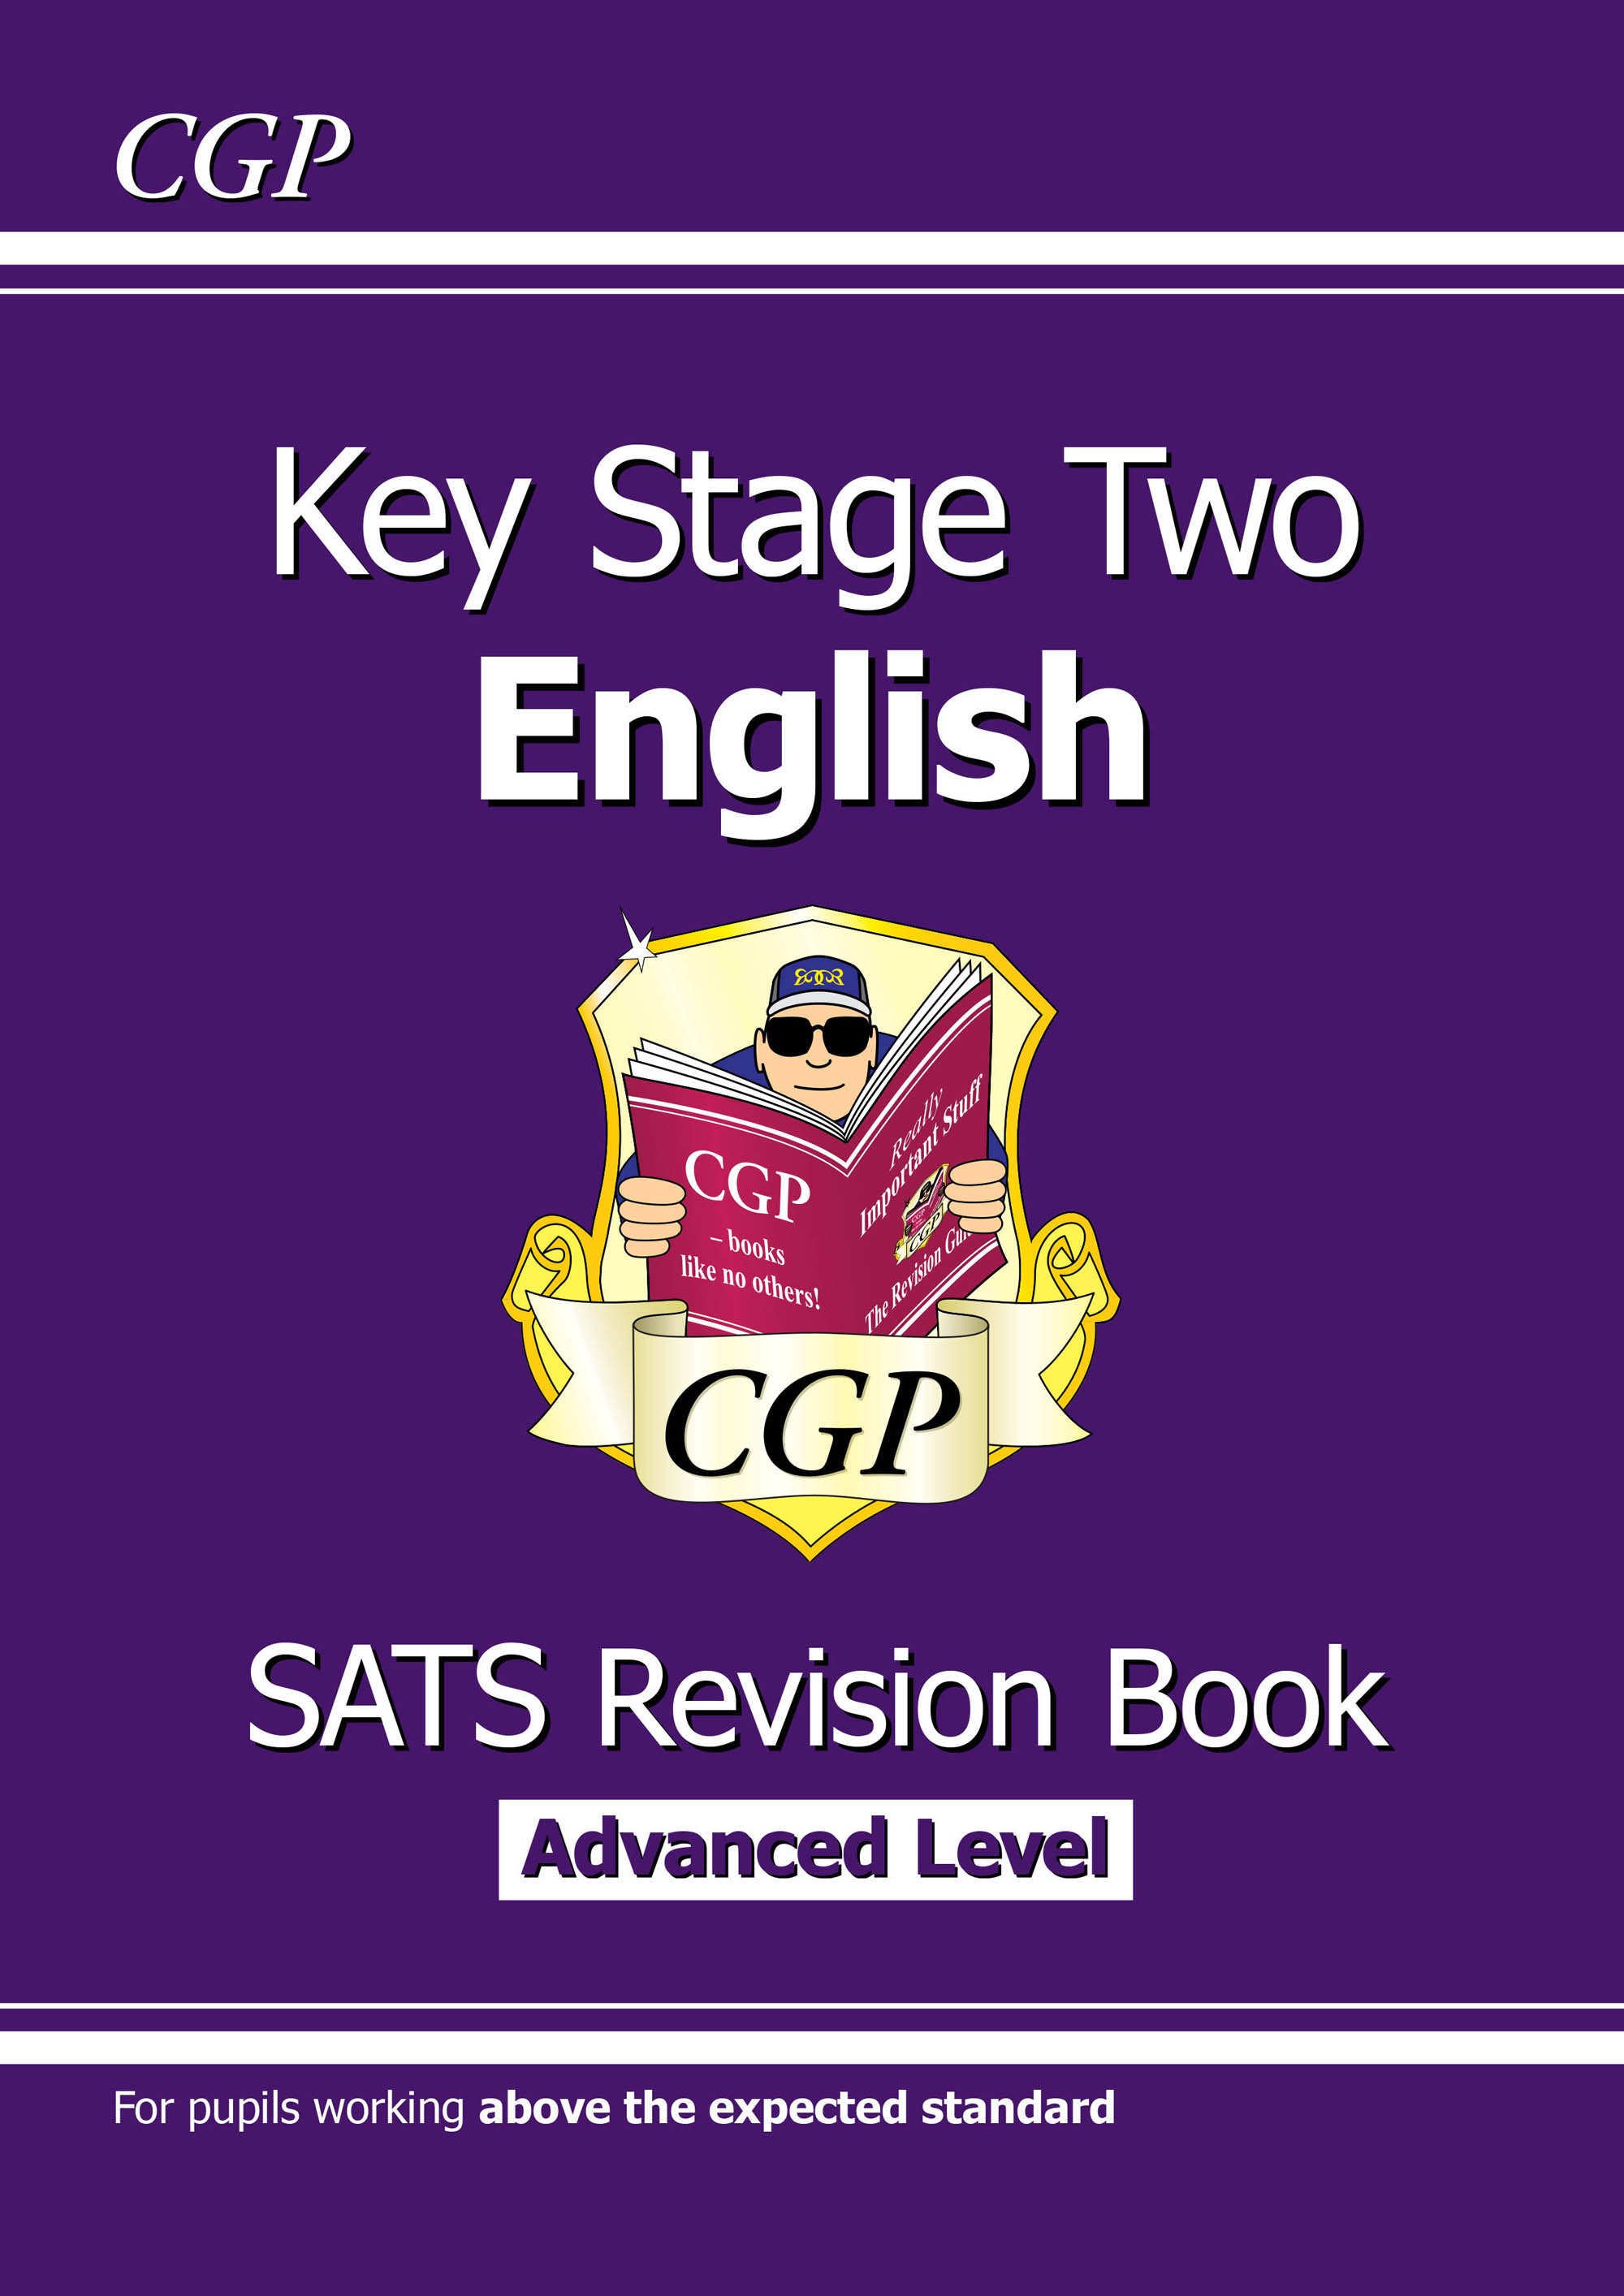 E6HR22DK - New KS2 English Targeted SATS Revision Book - Advanced Level (for tests in 2018 and beyon